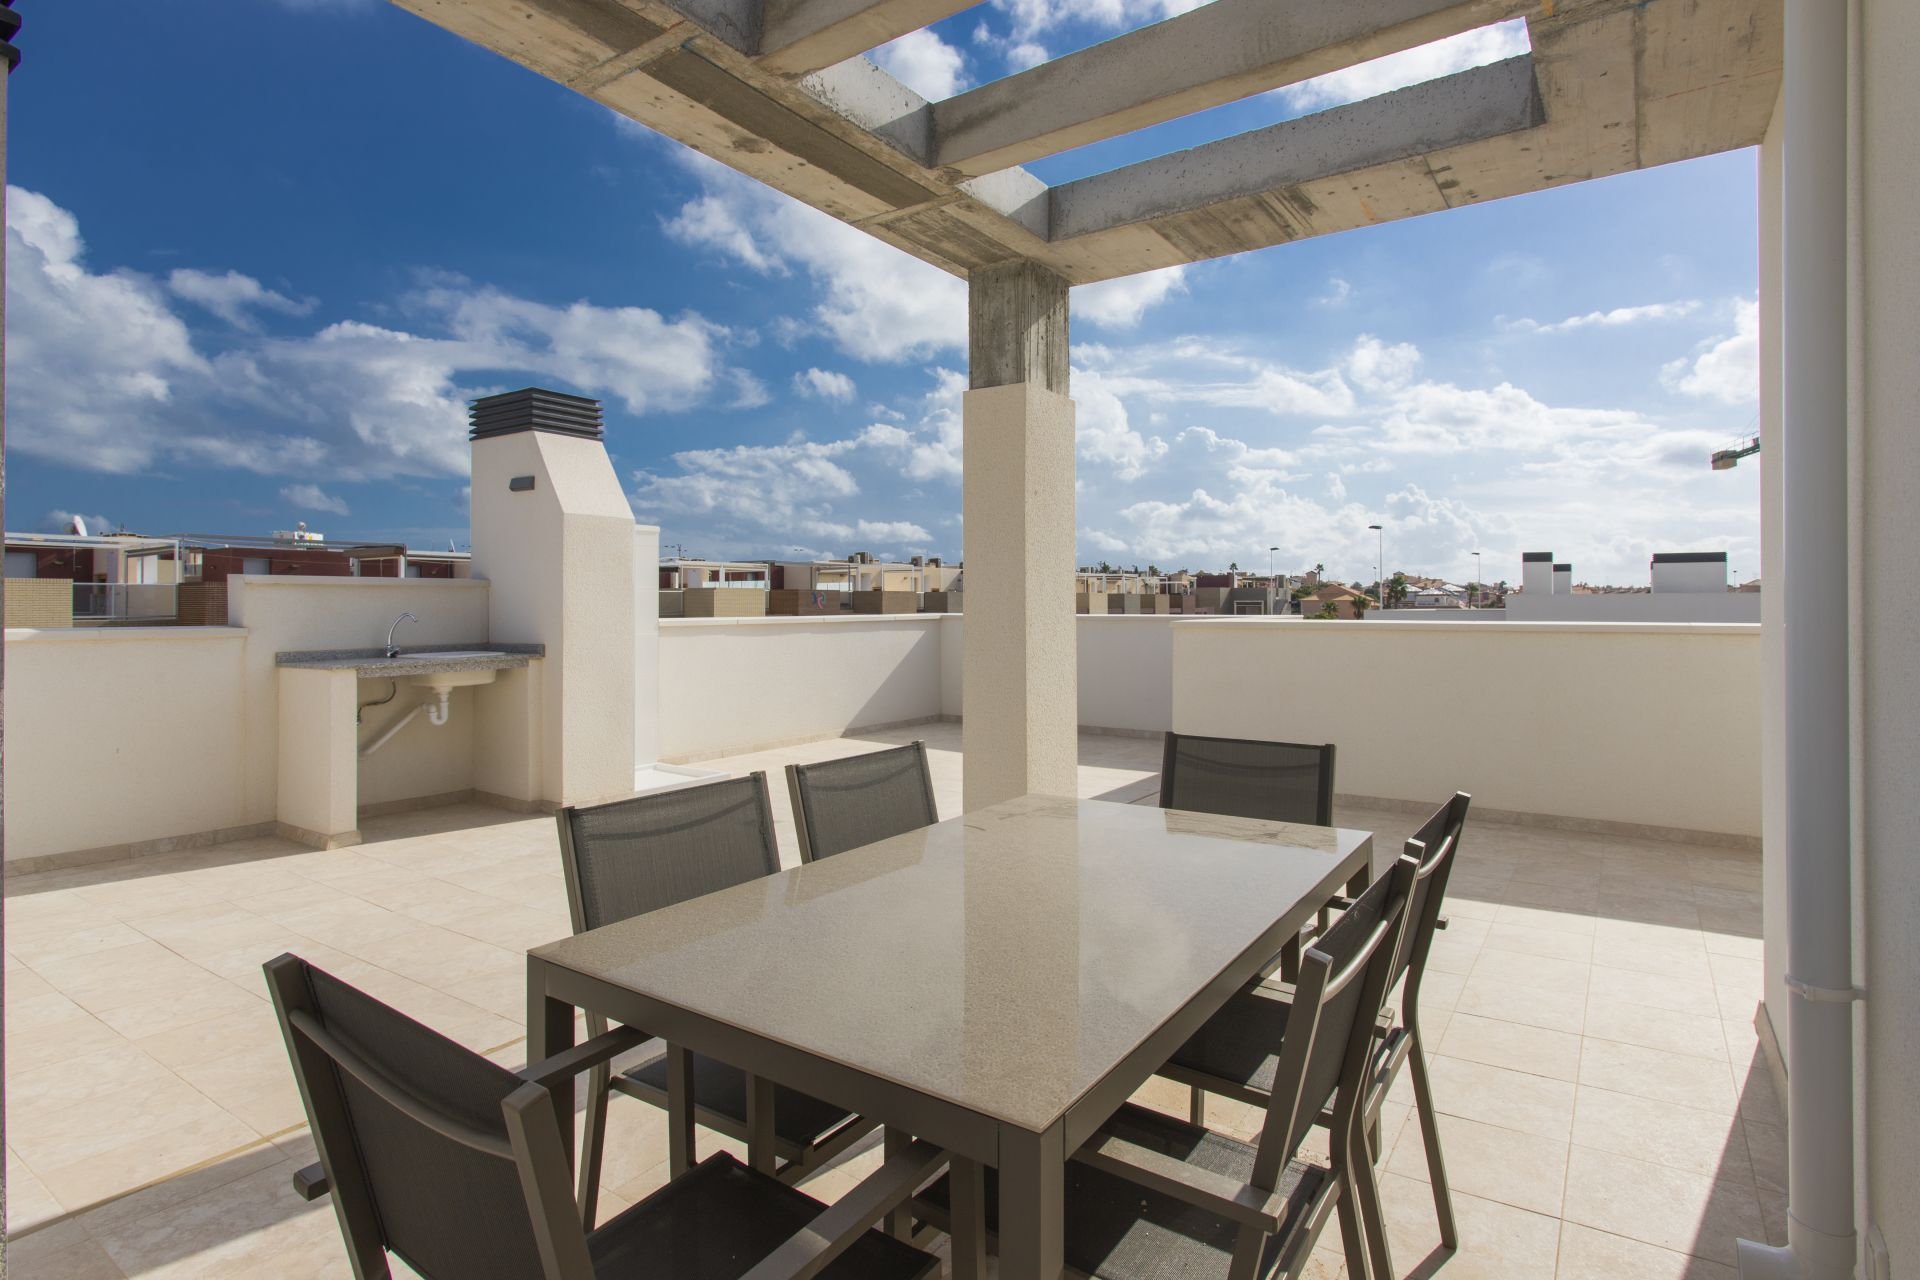 Apartment with 3 bedrooms and 3 bathrooms with solarium, Aguas Nuevas. 23